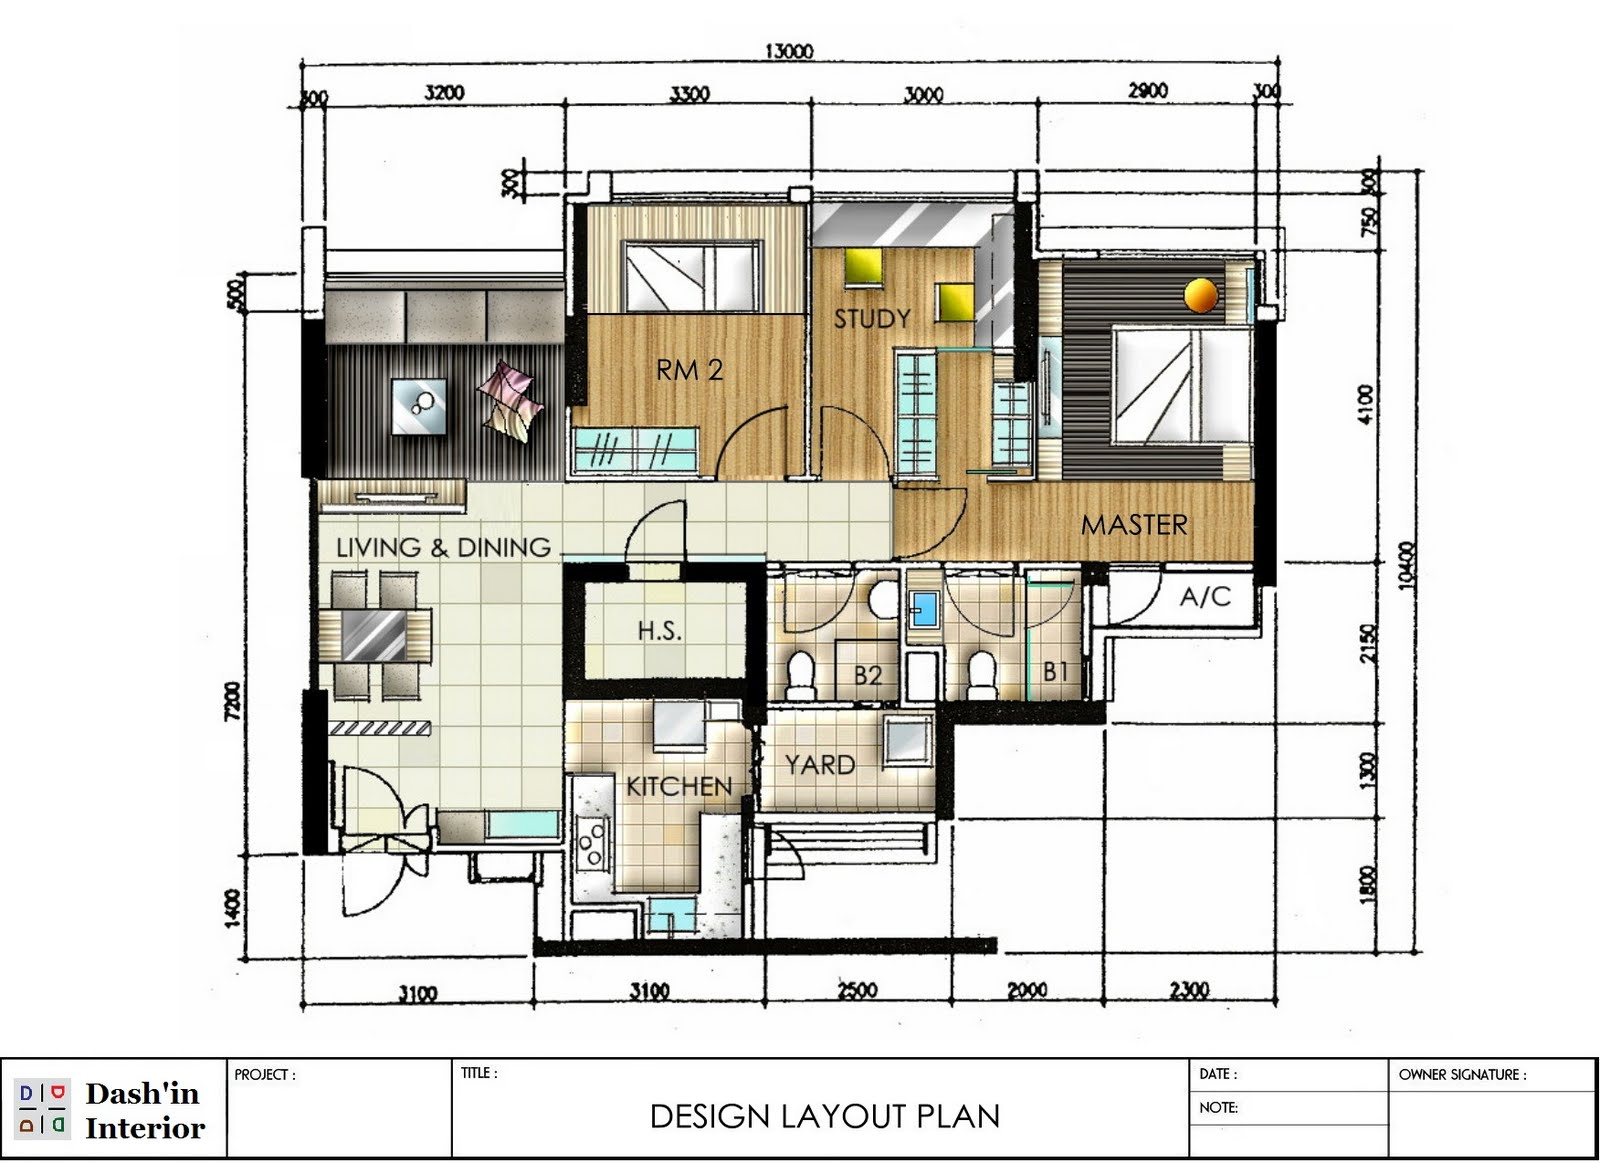 40 More 1 Bedroom Home Floor Plans Plan Layout Designer